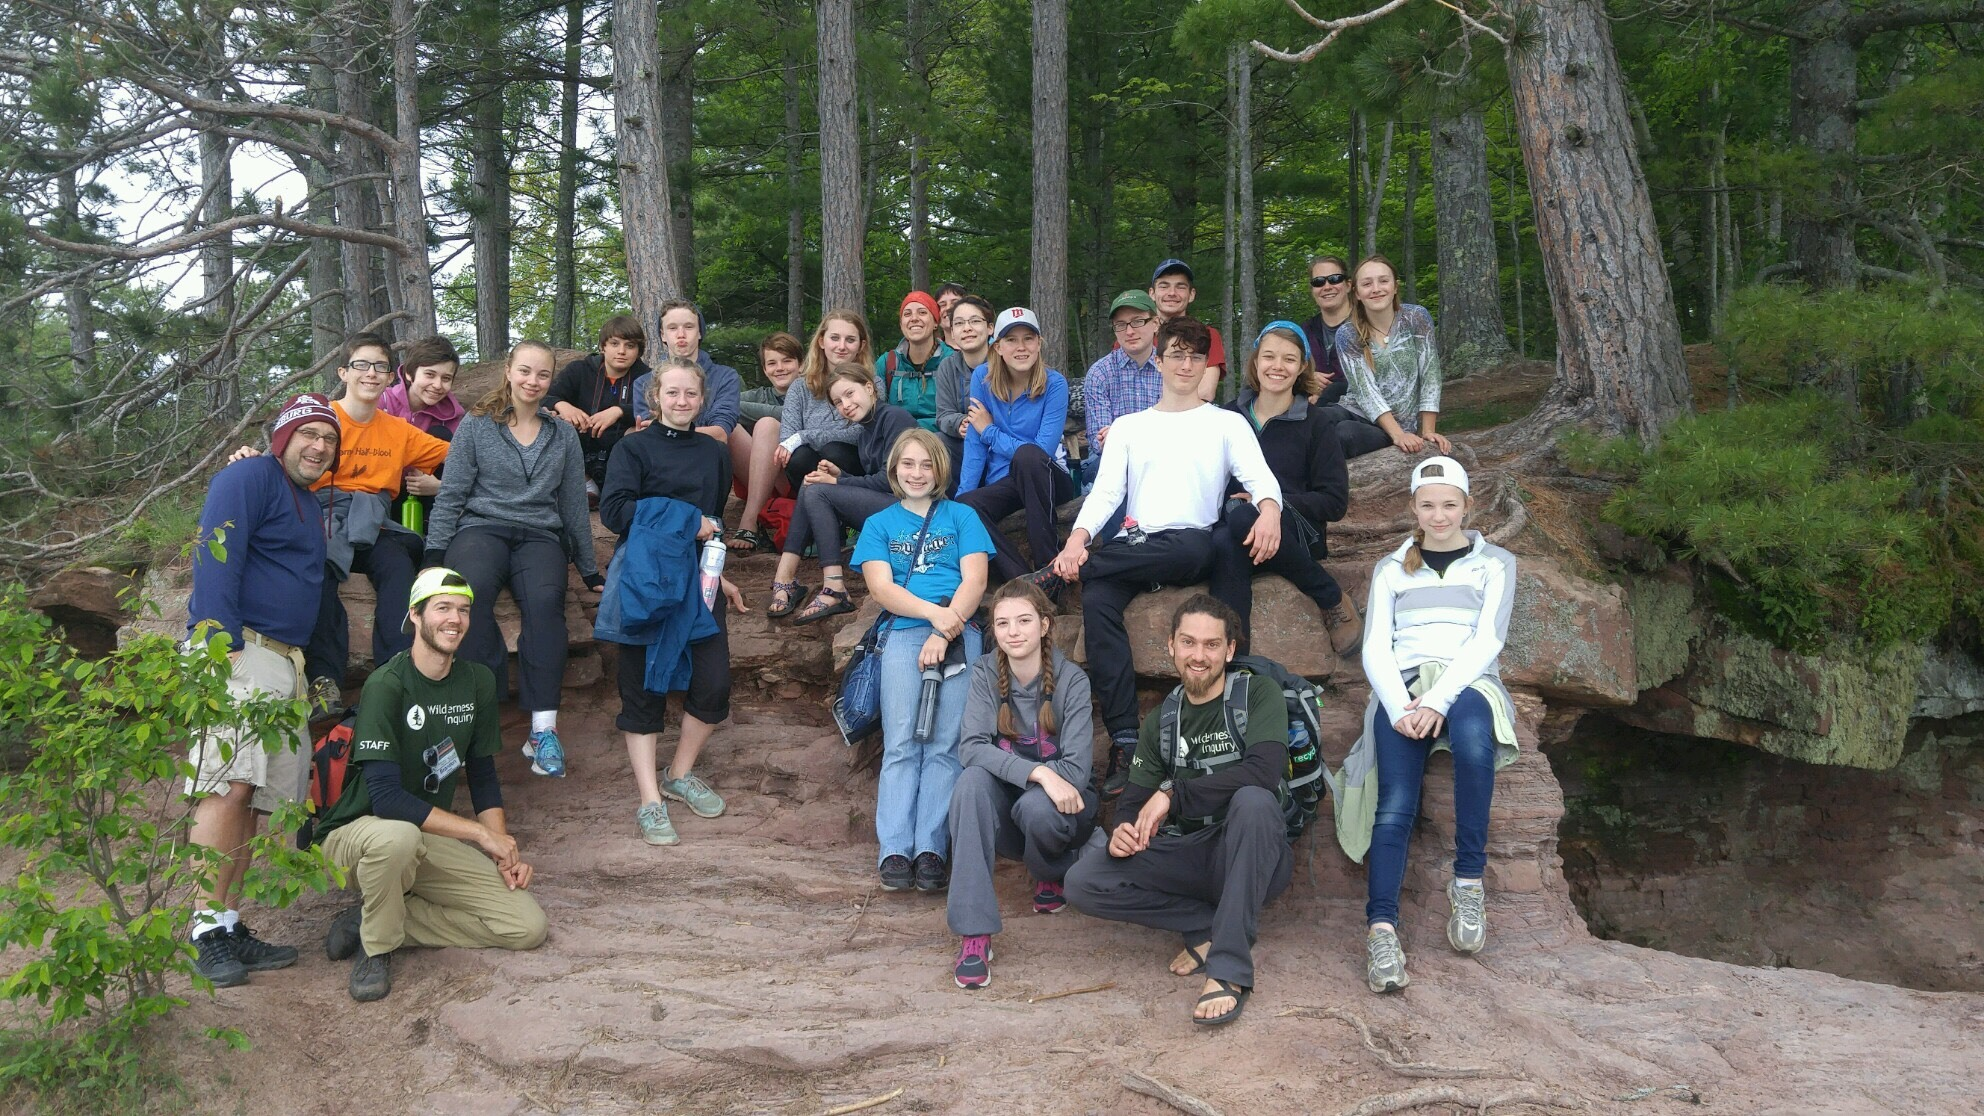 Apostle Island Trip group photo